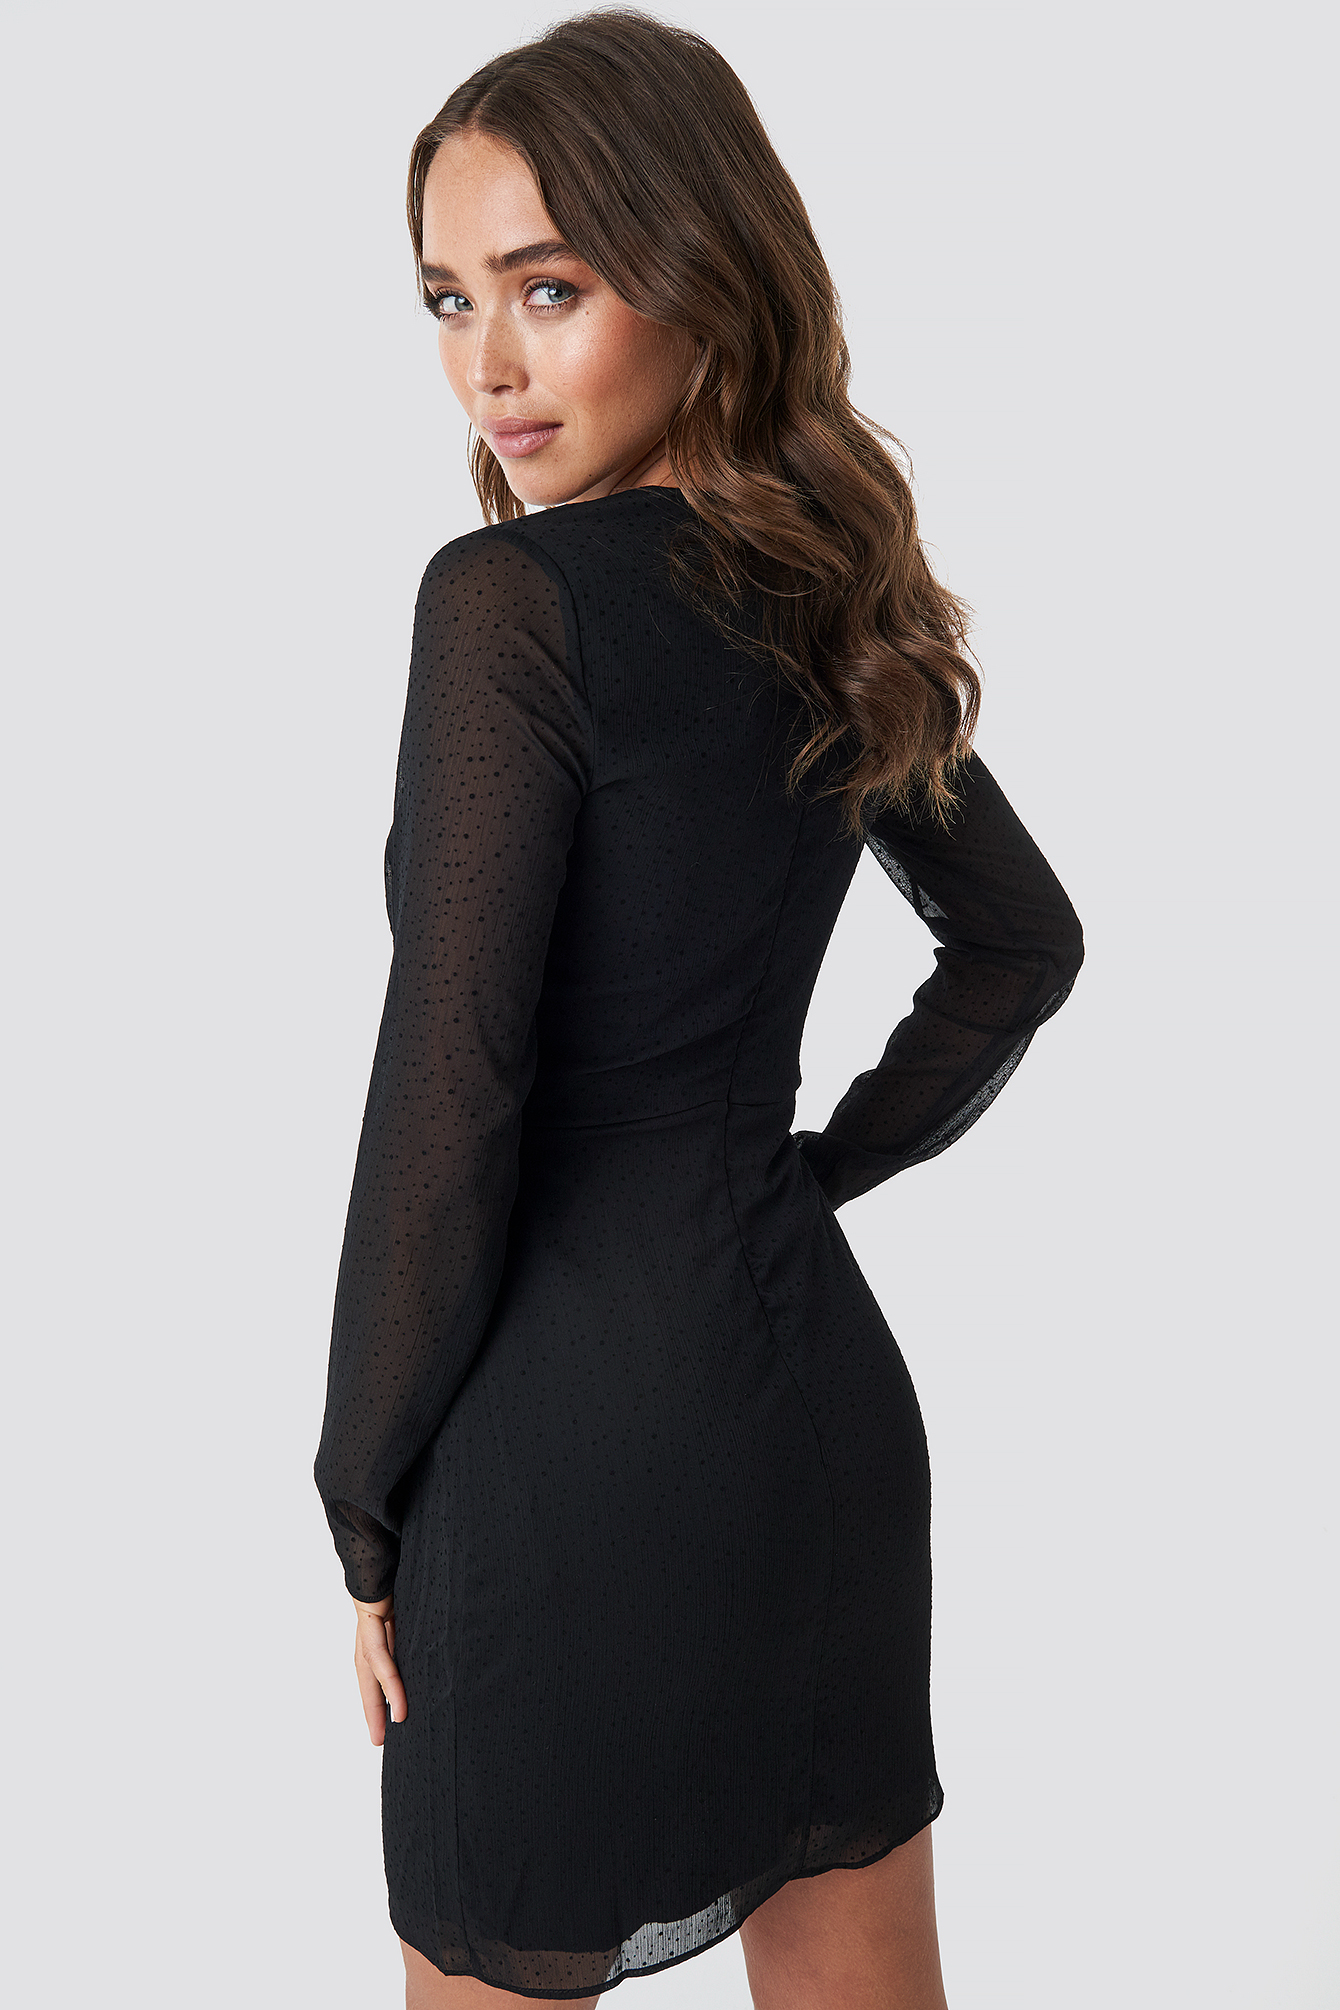 Black Mesh Sleeve Frilly Dress